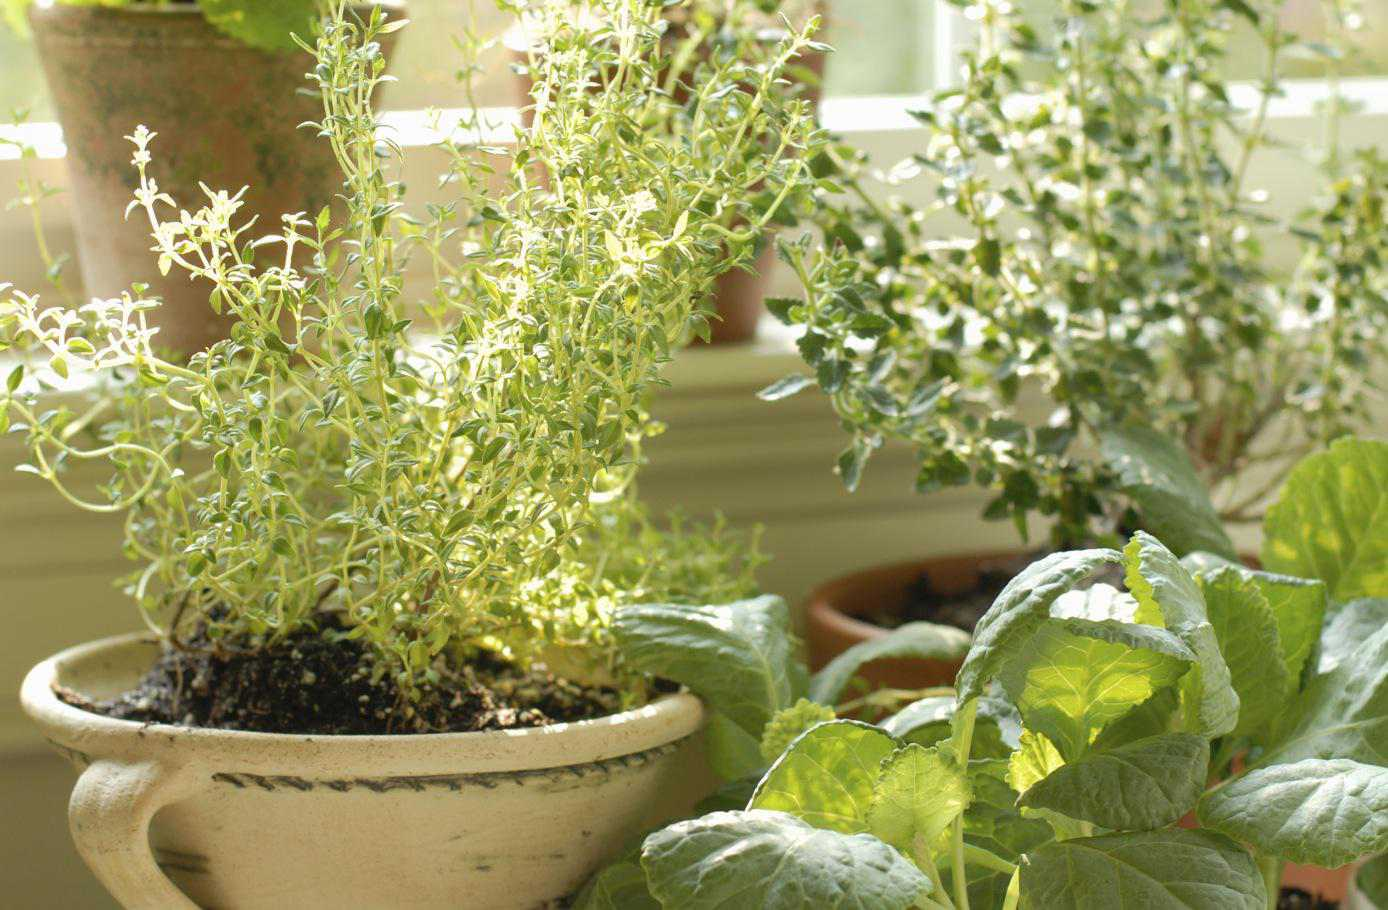 Pots With Herbs On Window Sill